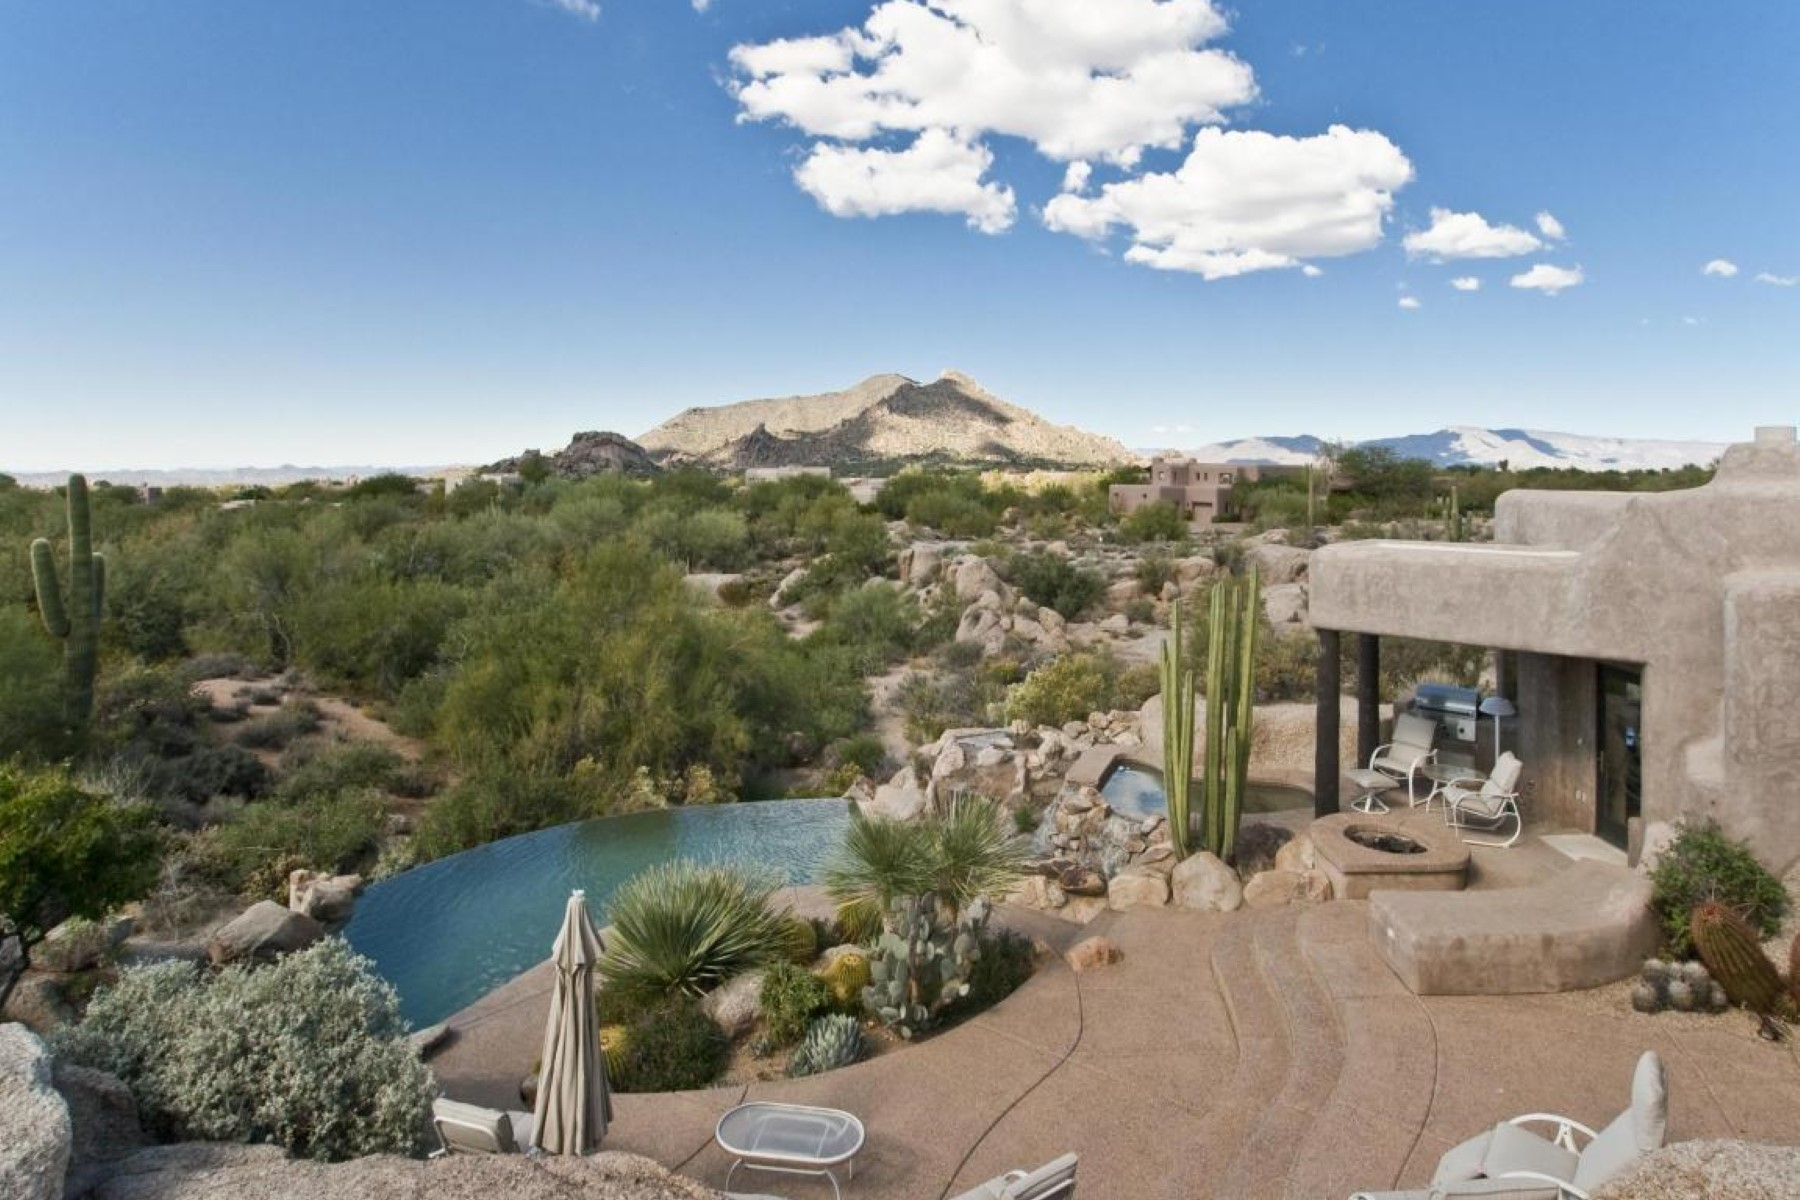 獨棟家庭住宅 為 出租 在 Adobe Style home with sweeping views 34394 N IRONWOOD RD MCMAHON, Scottsdale, 亞利桑那州, 85266 美國